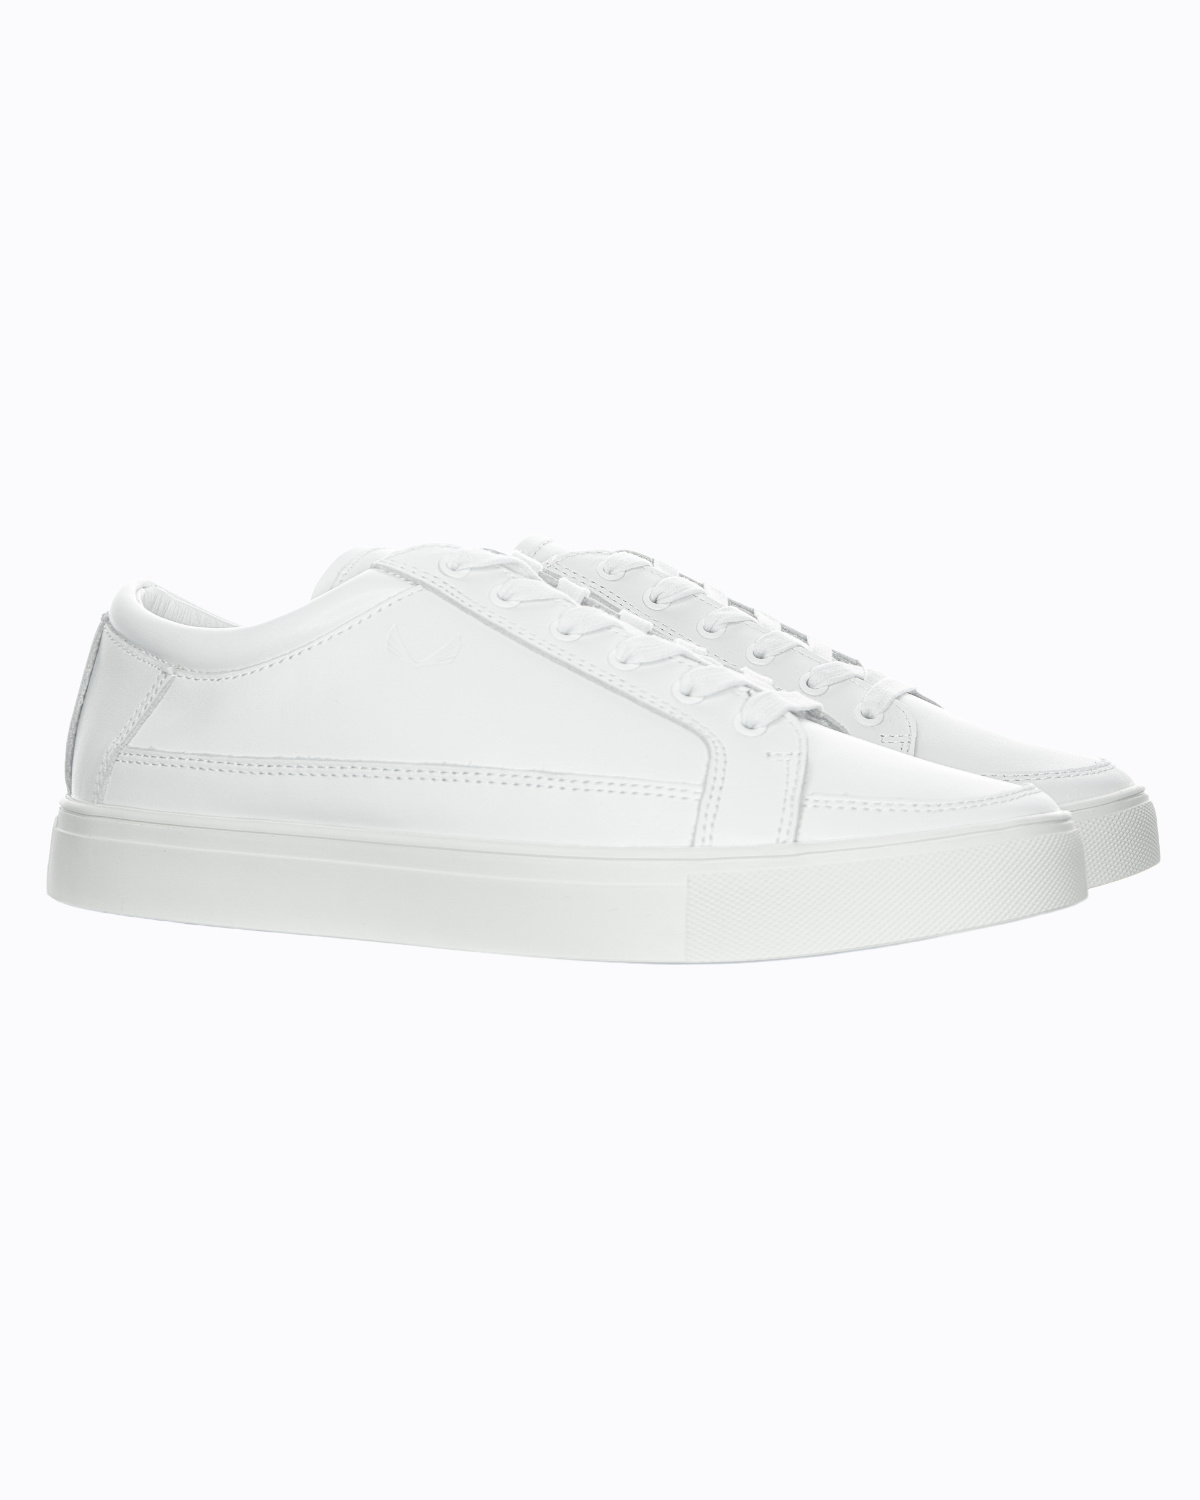 Zumo-Shoes-SHOTS-White